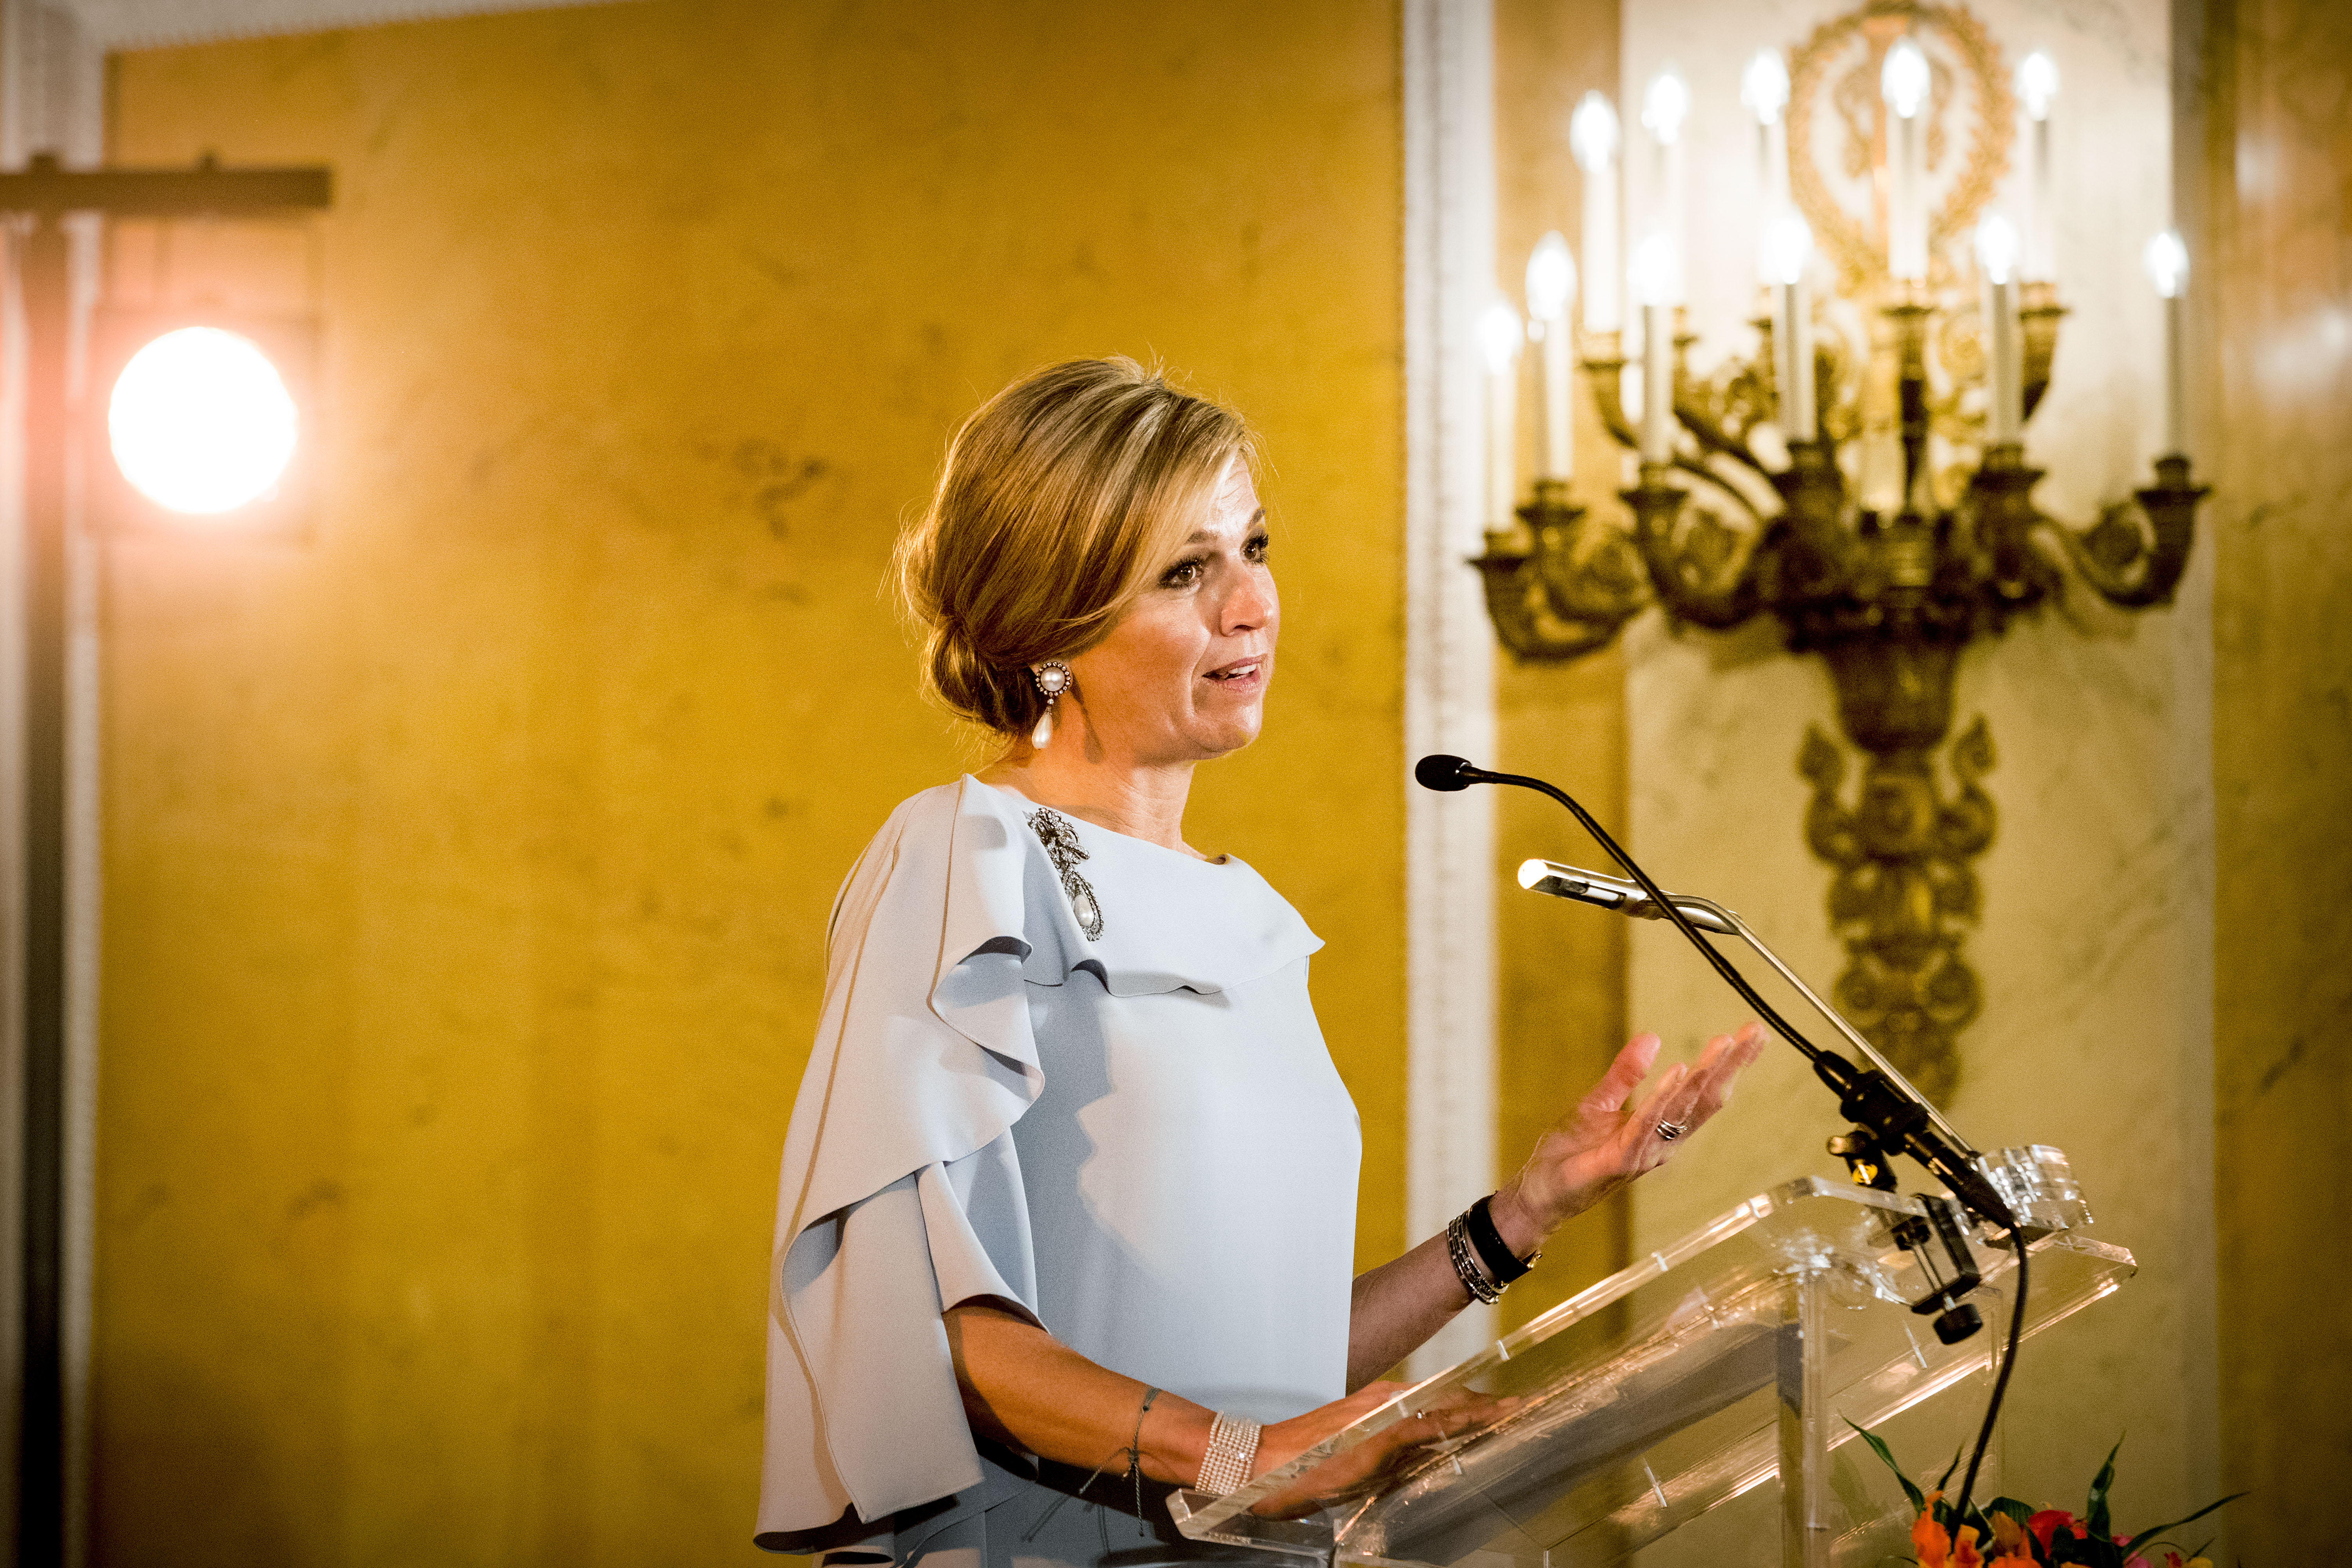 Queen Maxima of The Netherlands during the award ceremony of the Appeltjes van Oranje for social projects in The Hague, Netherlands on June 6, 2018.